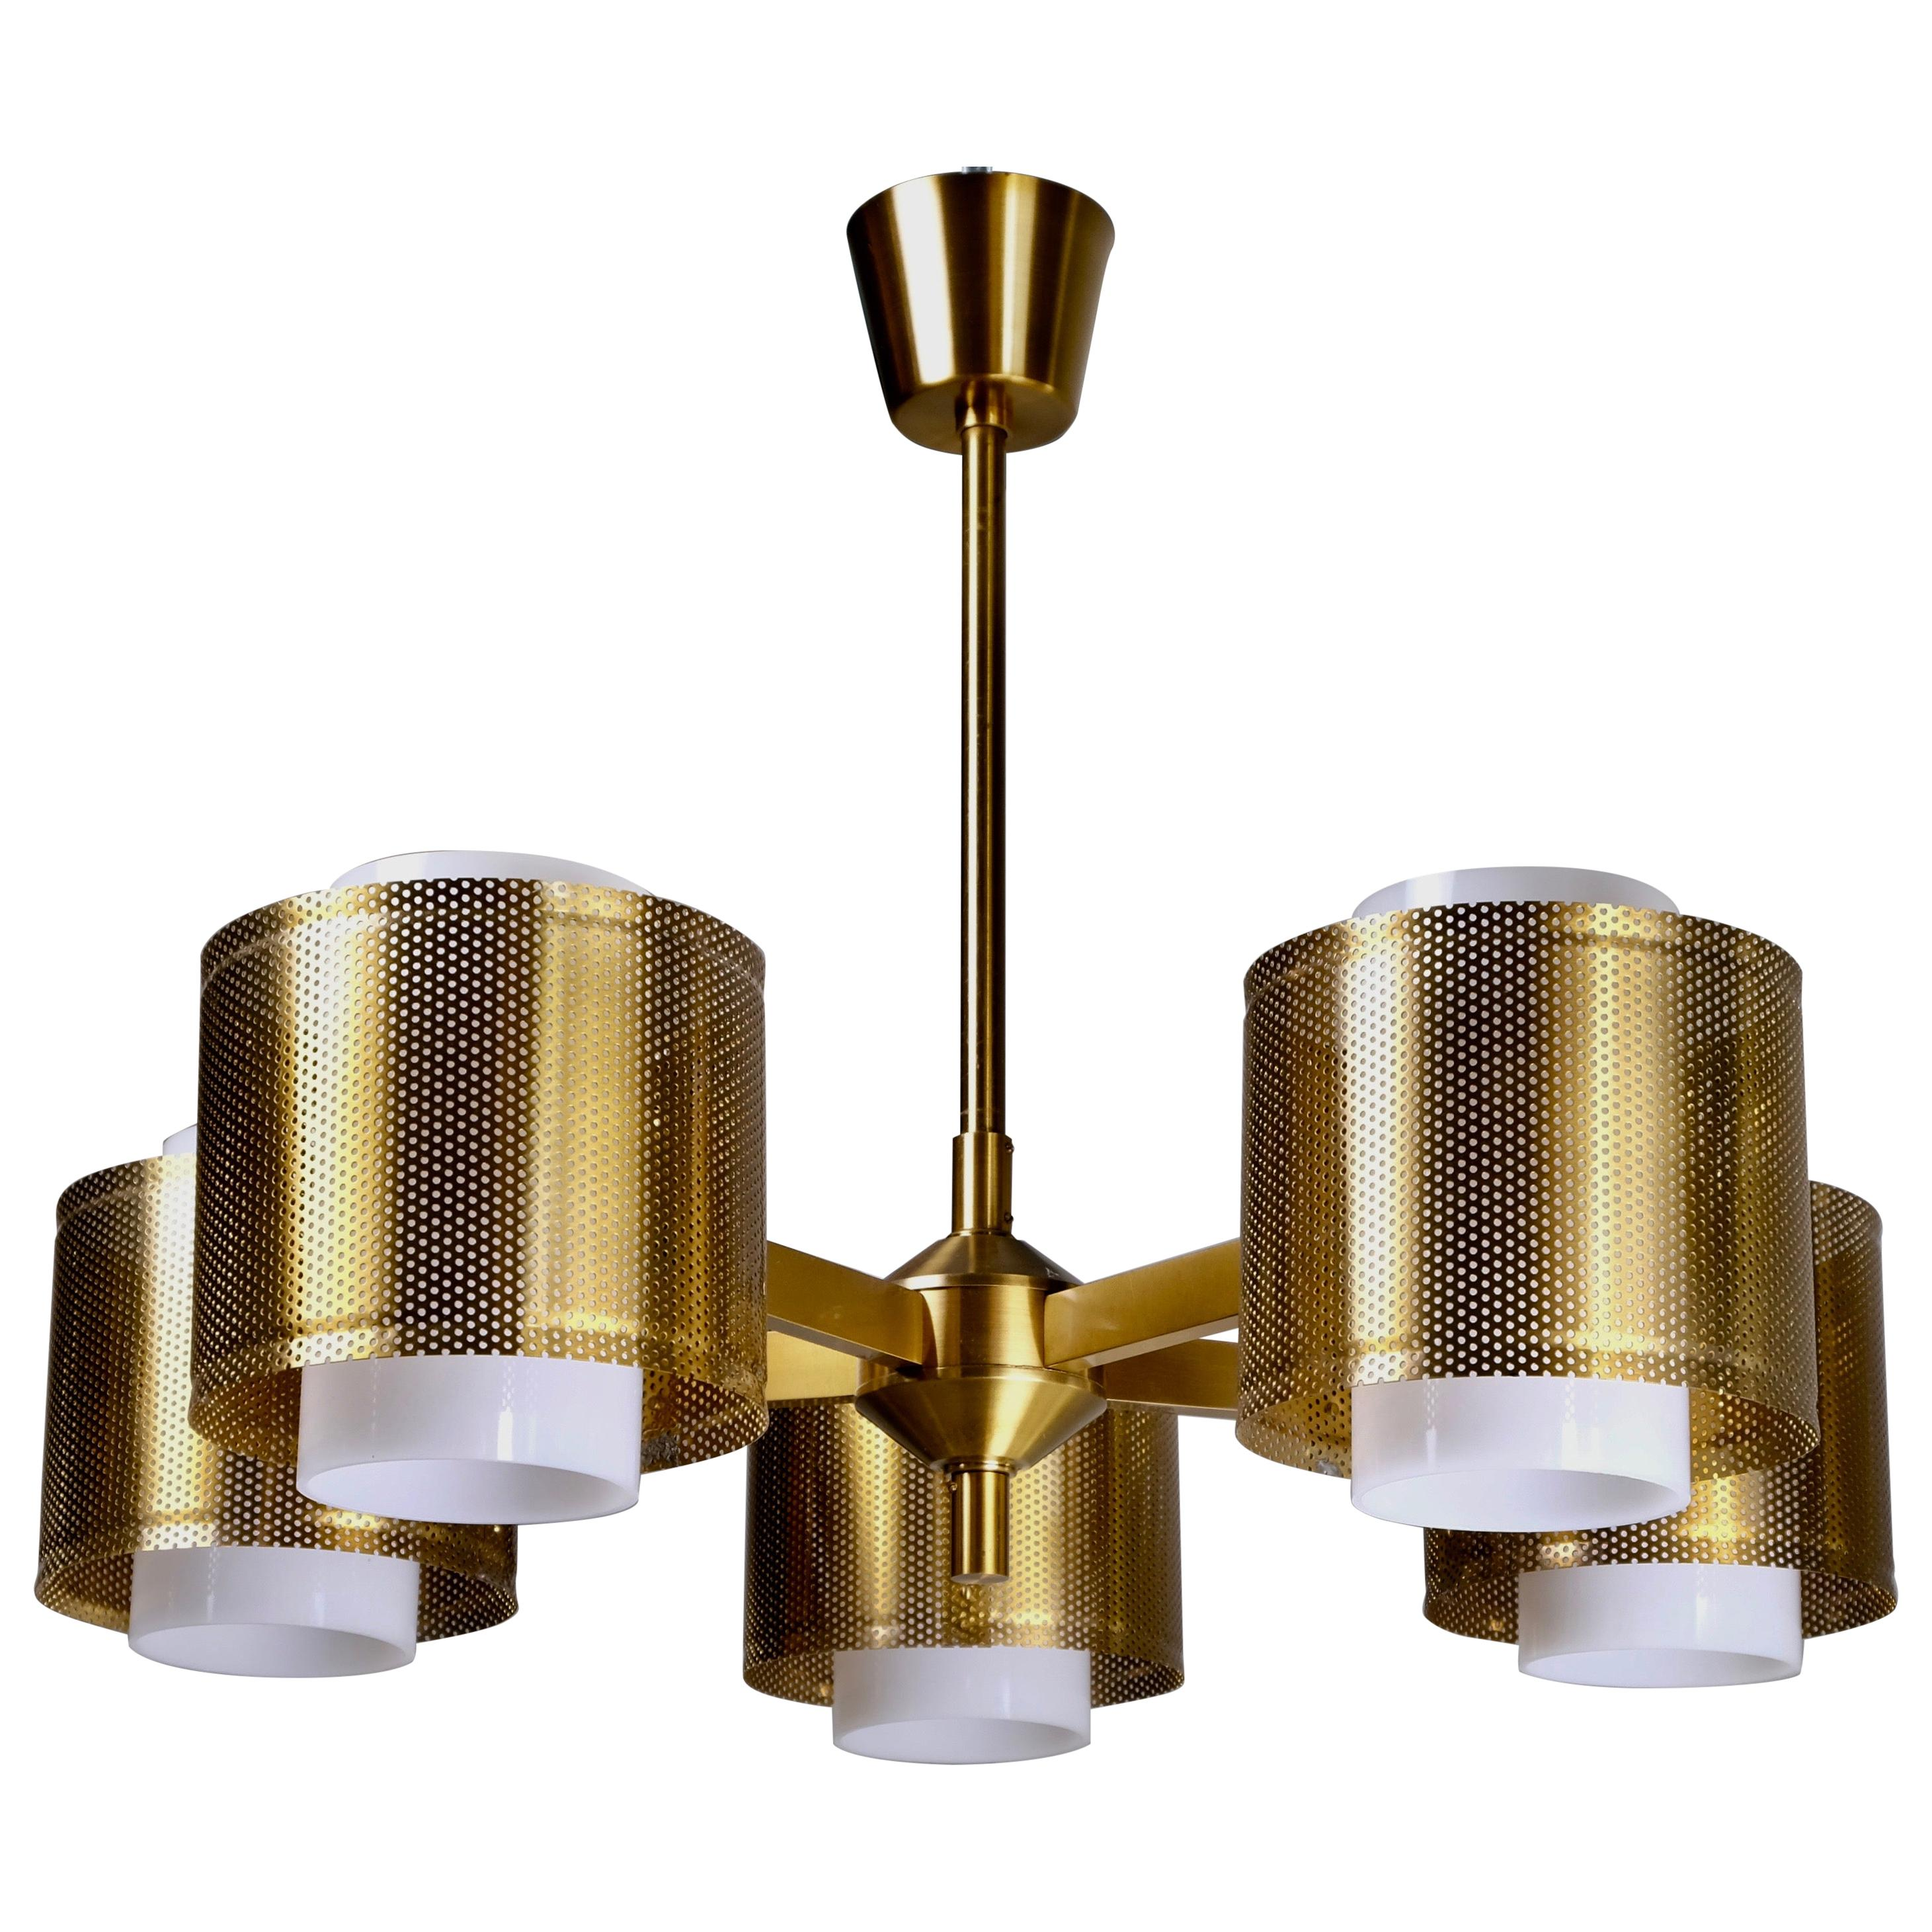 Set of 3 Brass Ceiling Lamps by Holger Johansson, Sweden, 1960s